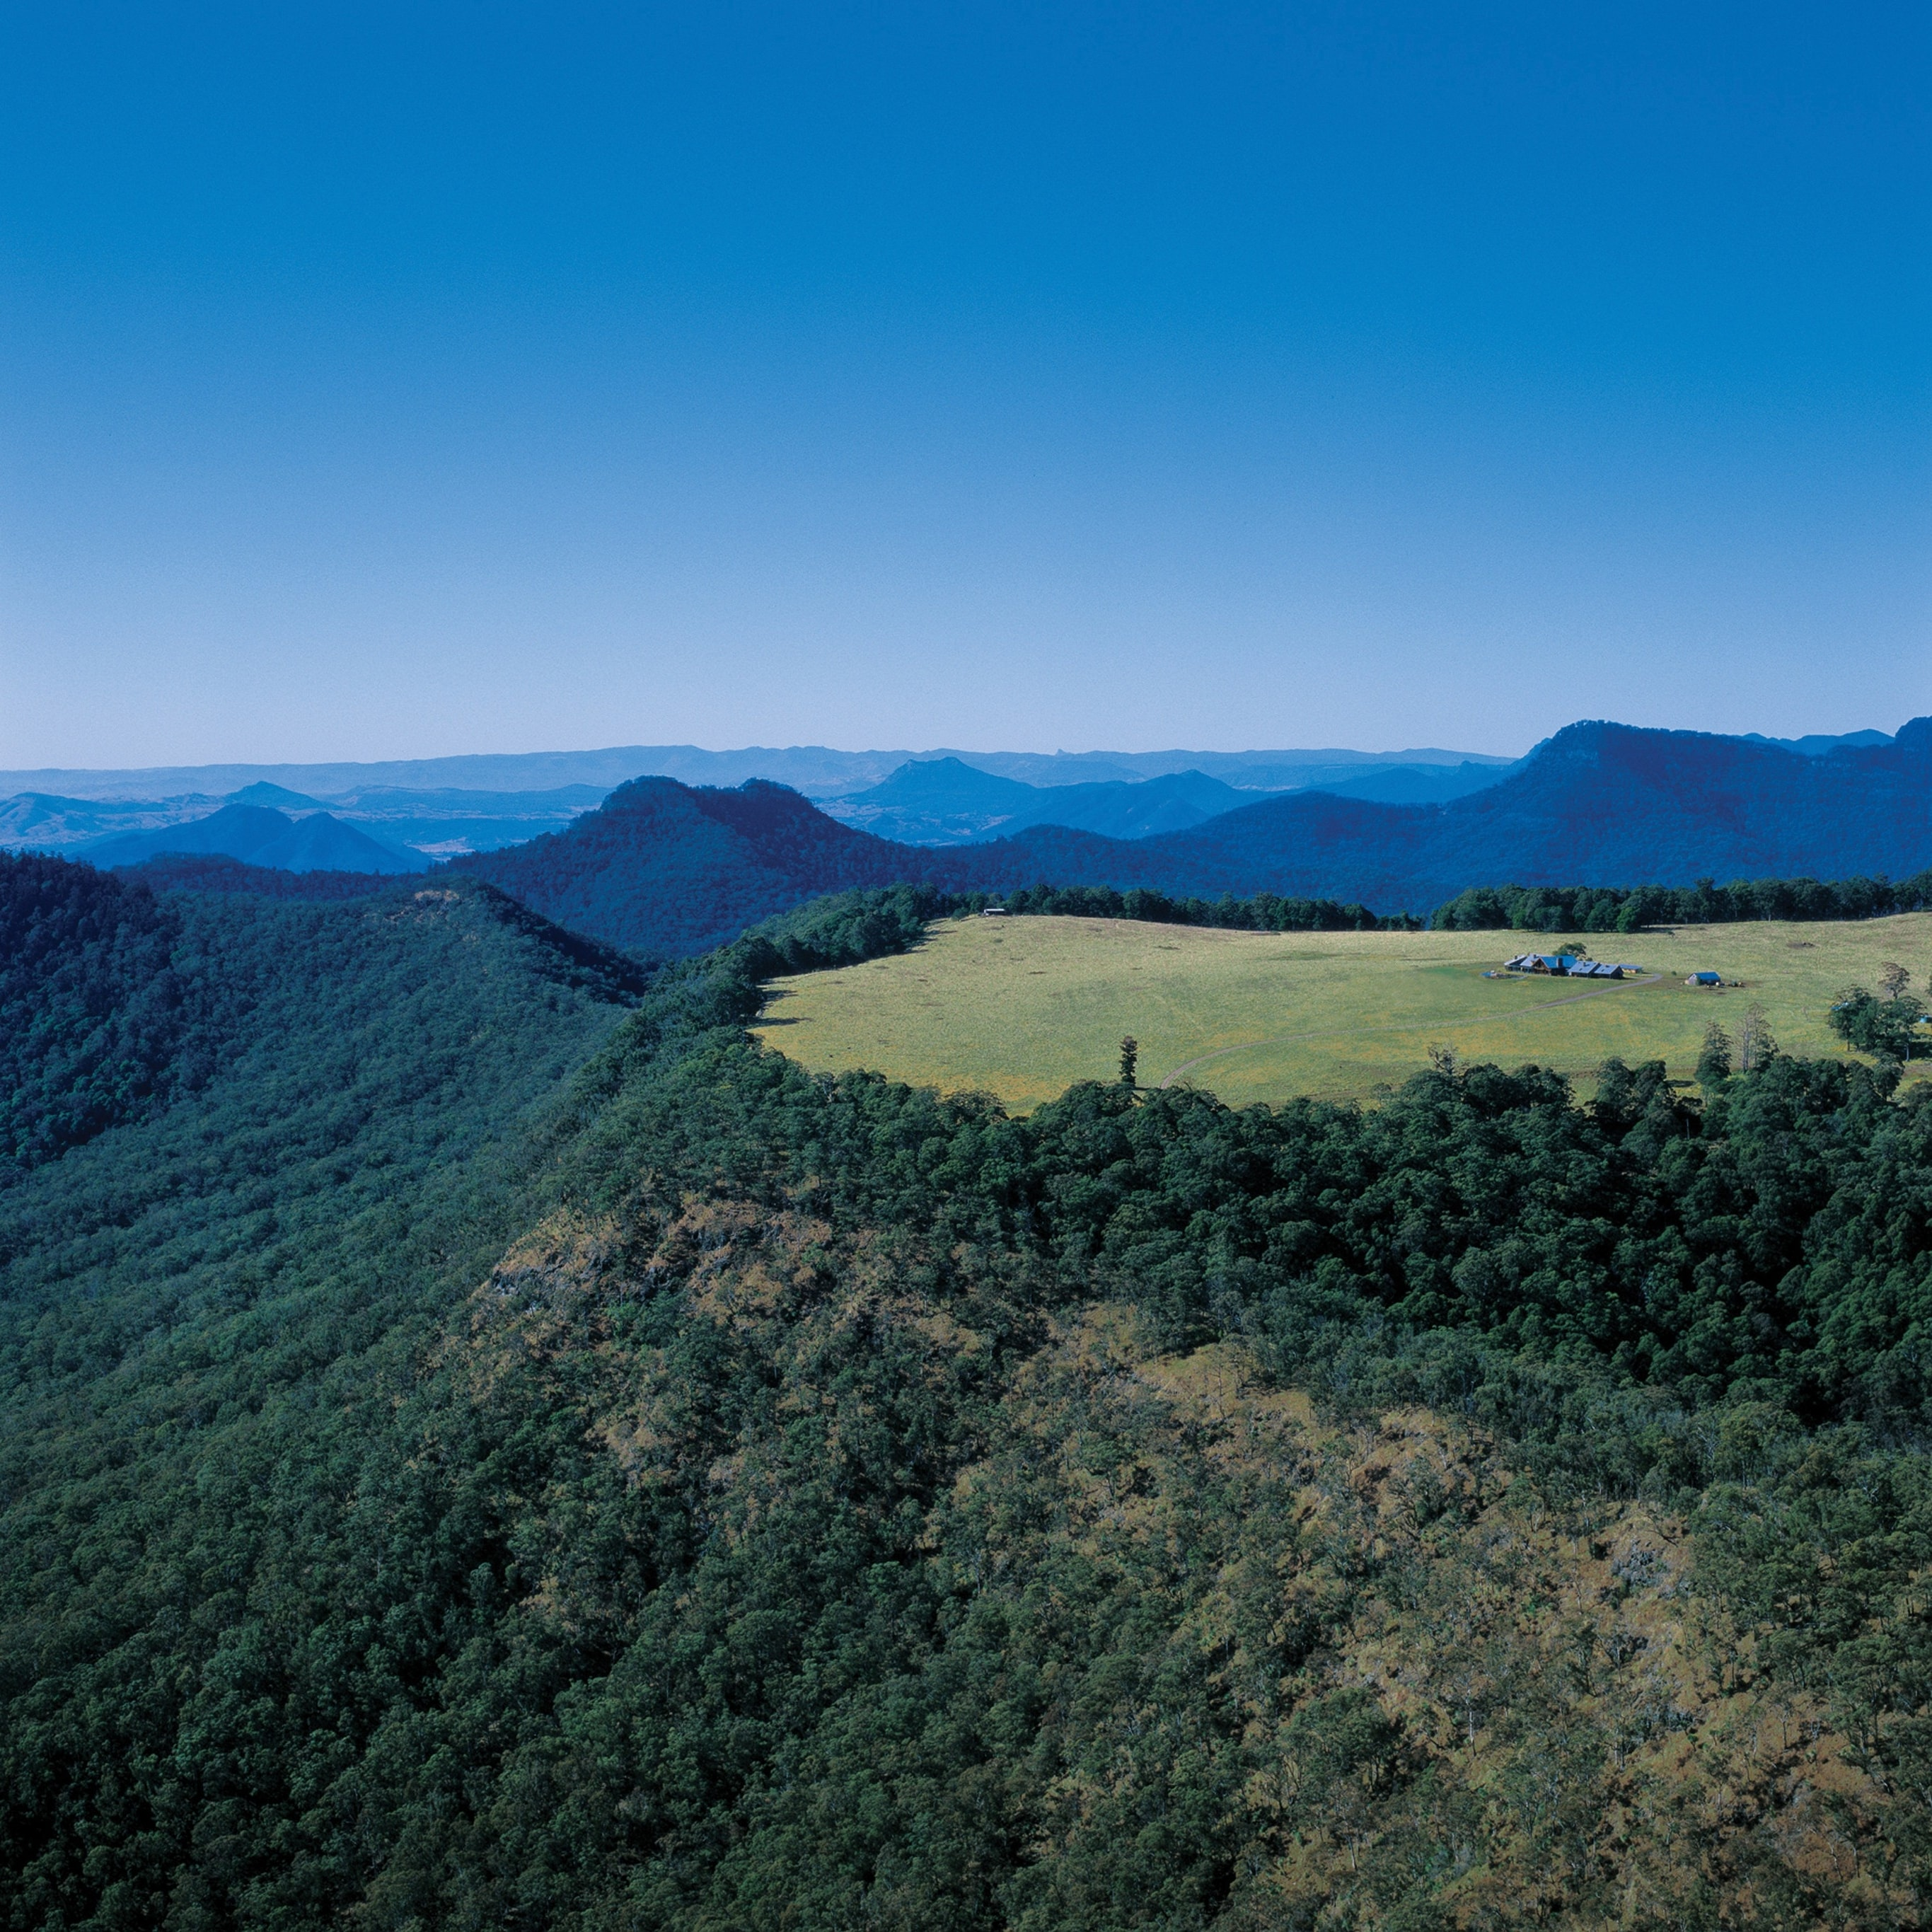 The Scenic Rim from above, Qld © Spicers Group